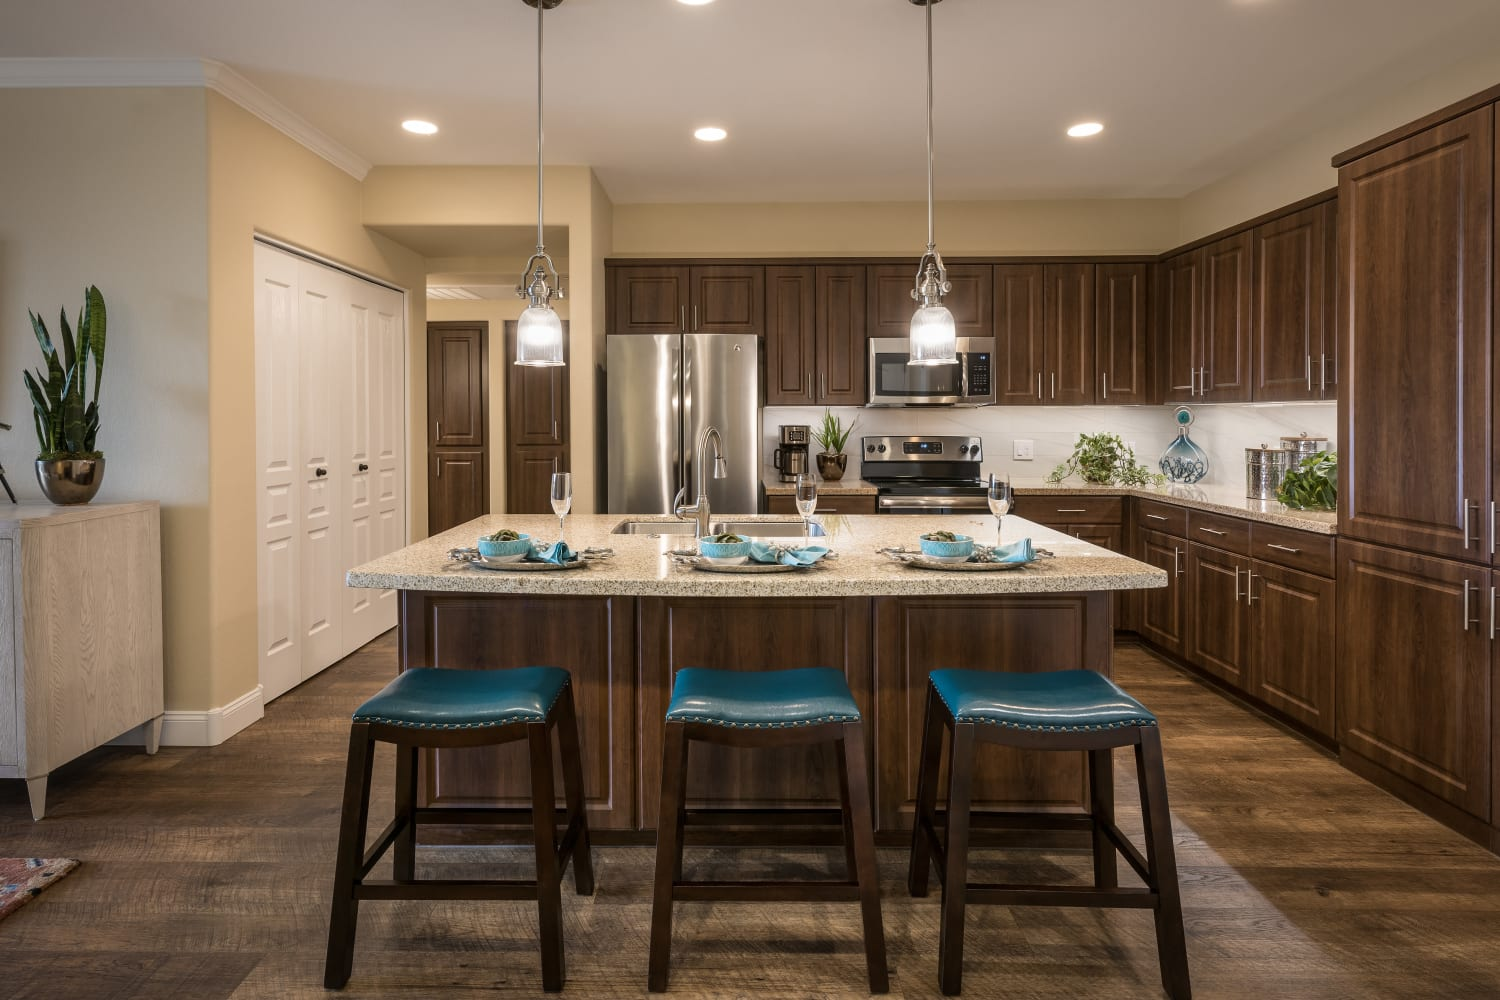 One Bedroom Kitchen San Valencia in Chandler, Arizona